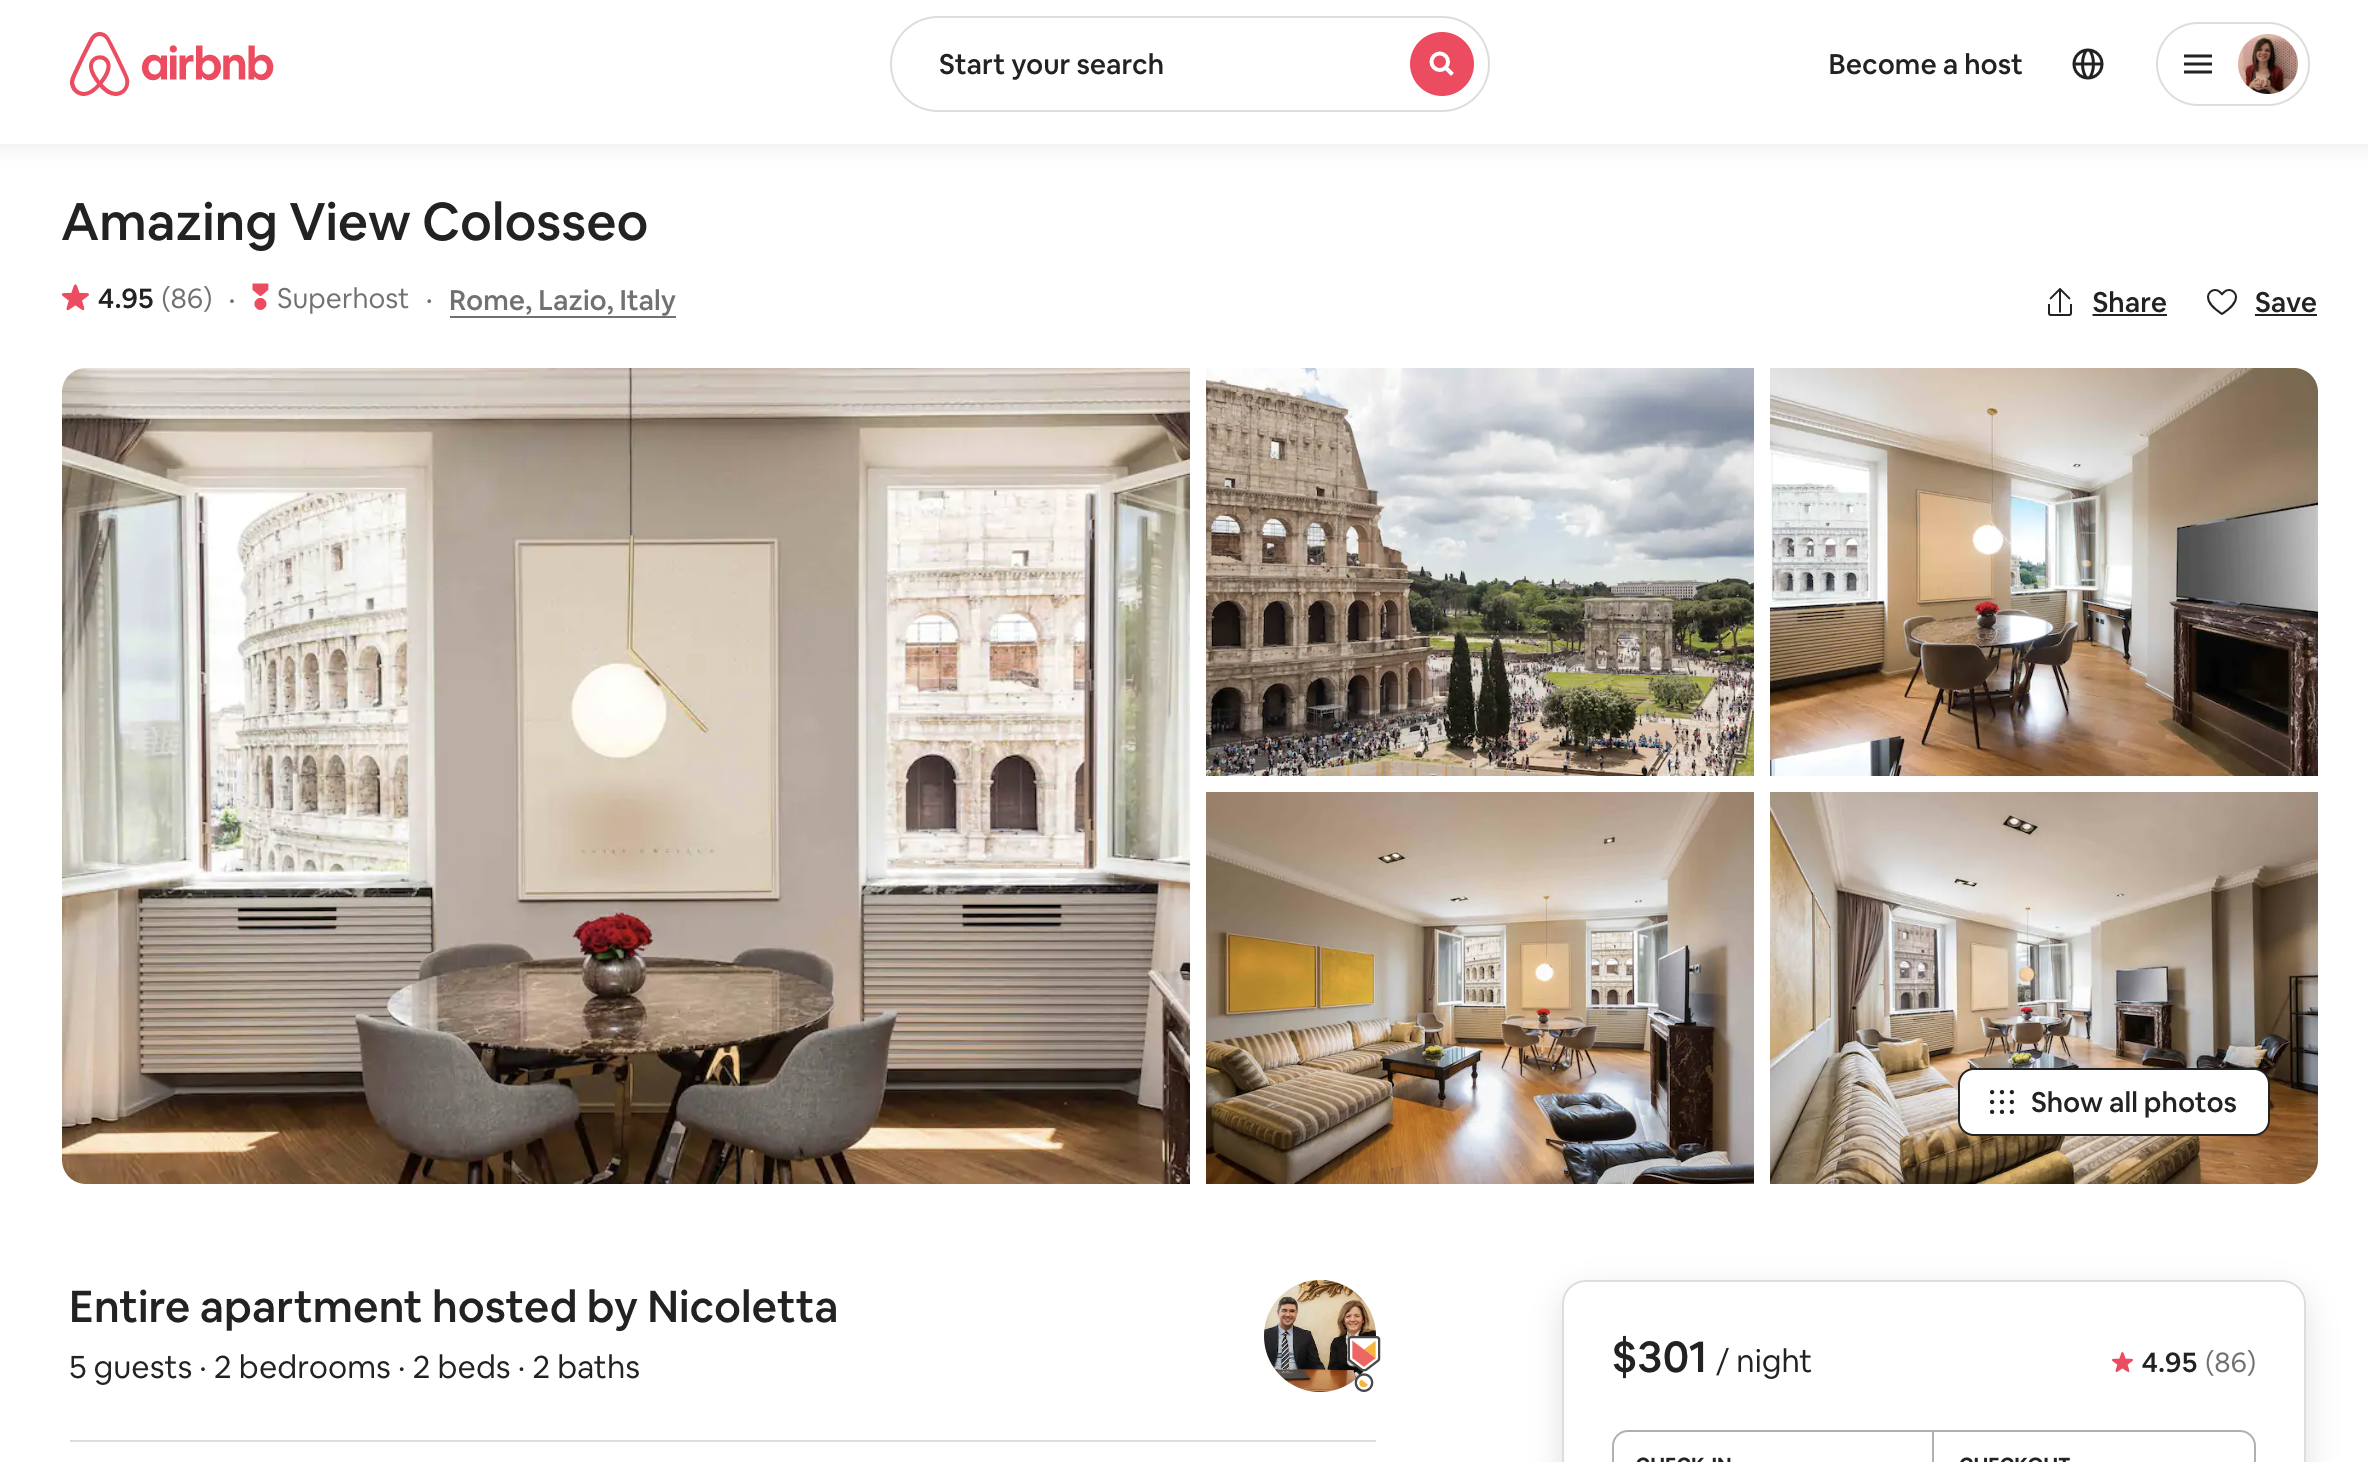 screenshot of the images page of an airbnb in Rome, Italy